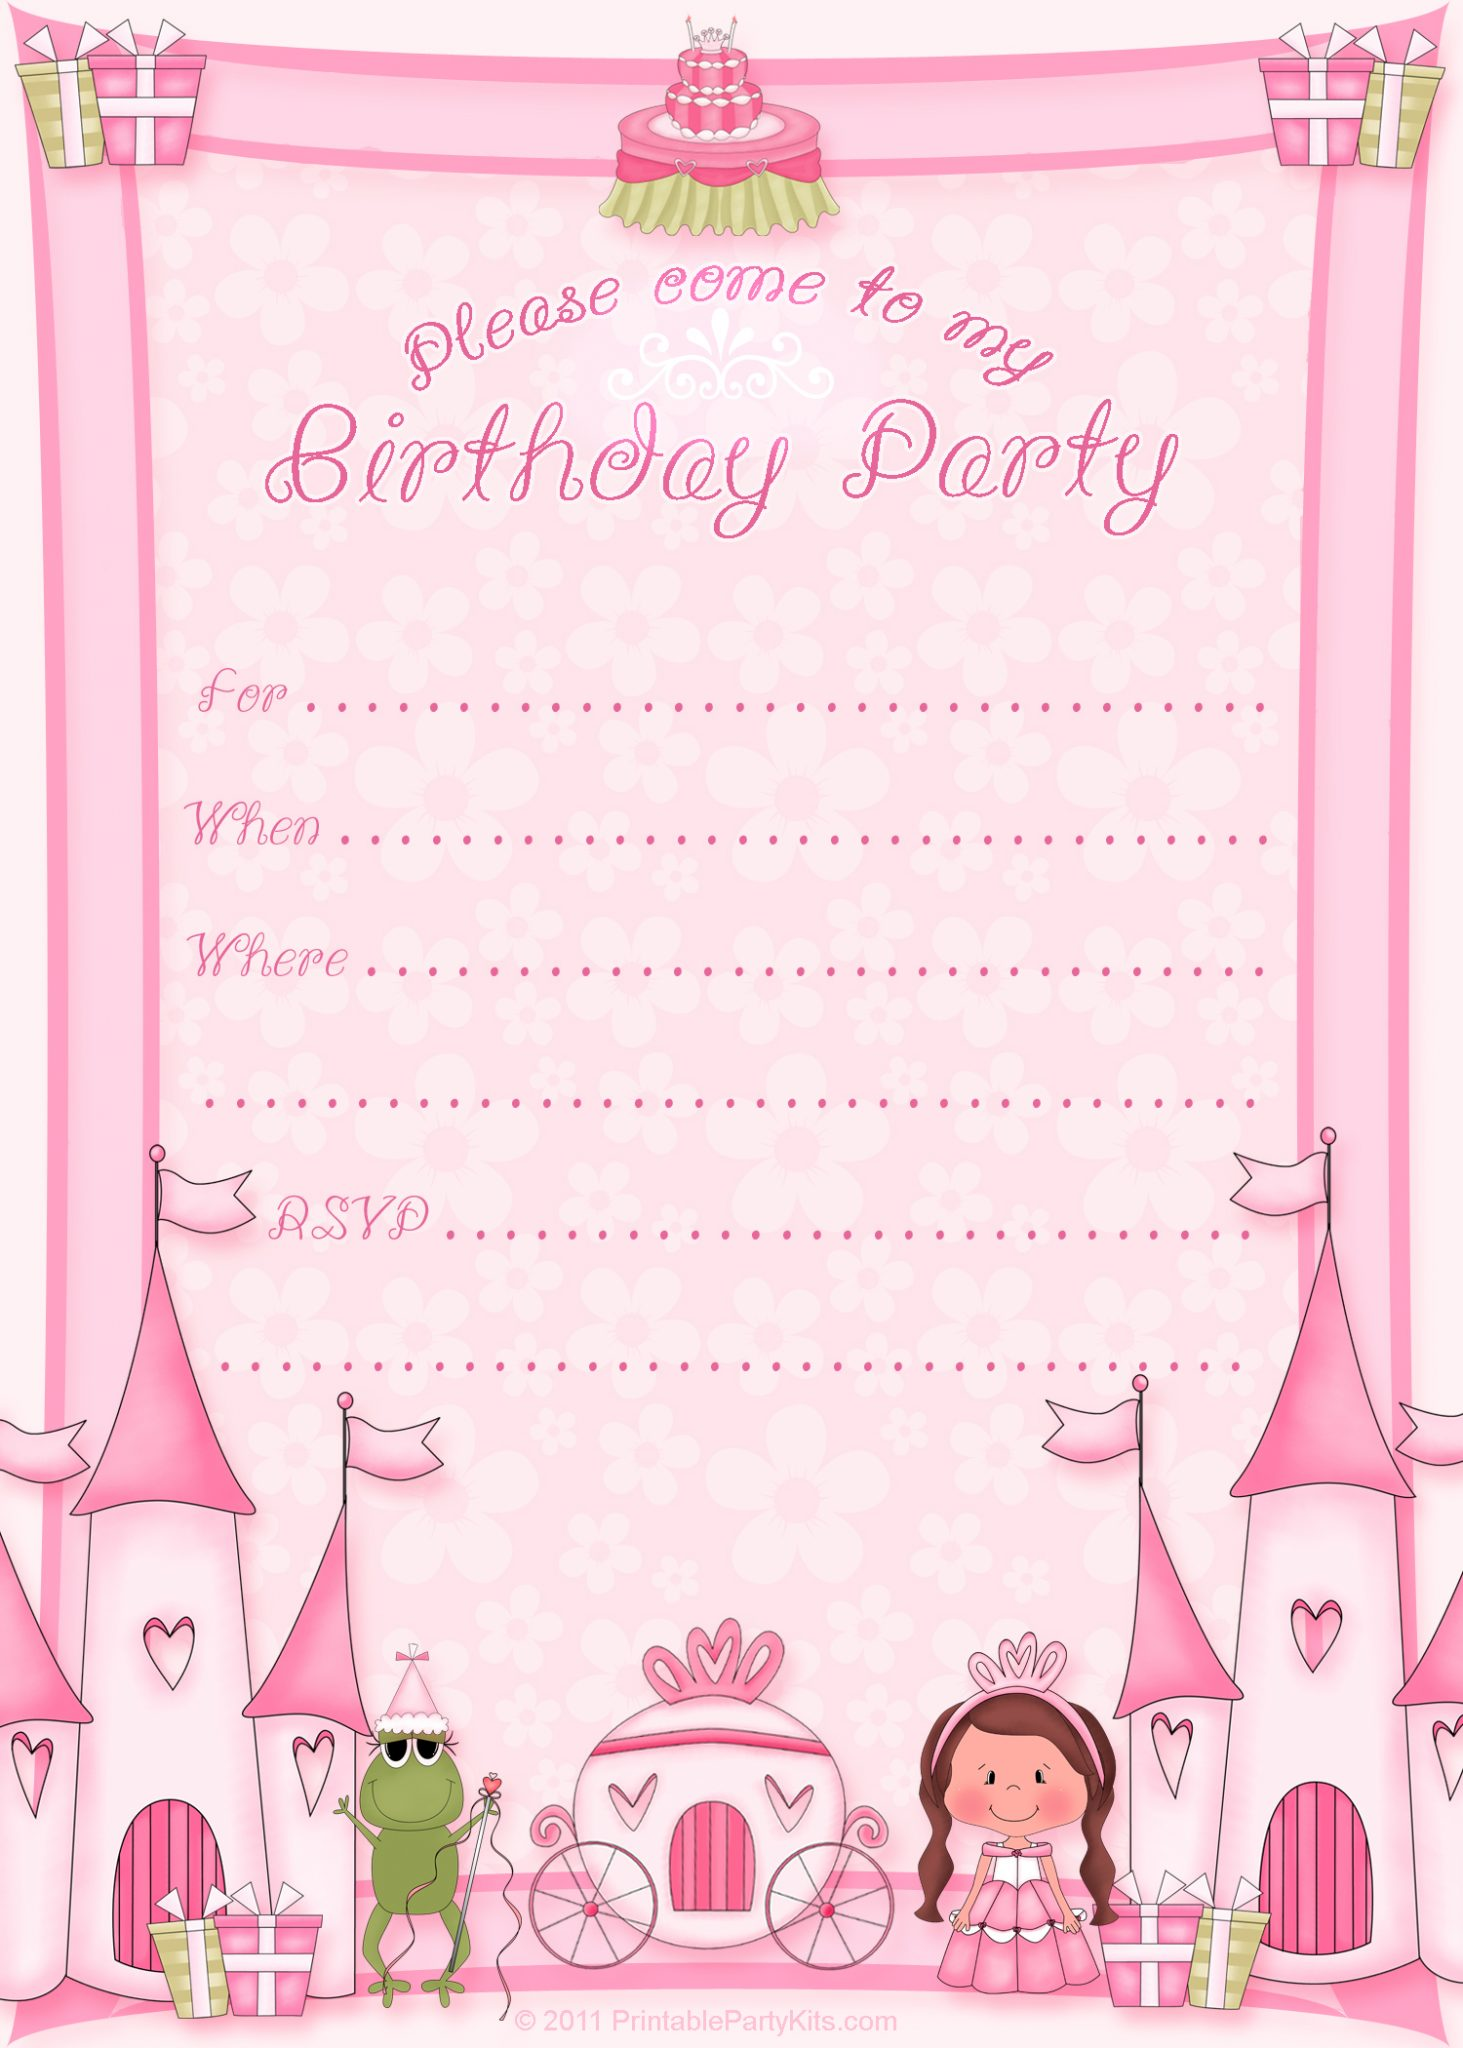 Free Birthday Invitation Templates You Will Love These - Birthday invitations templates free printable